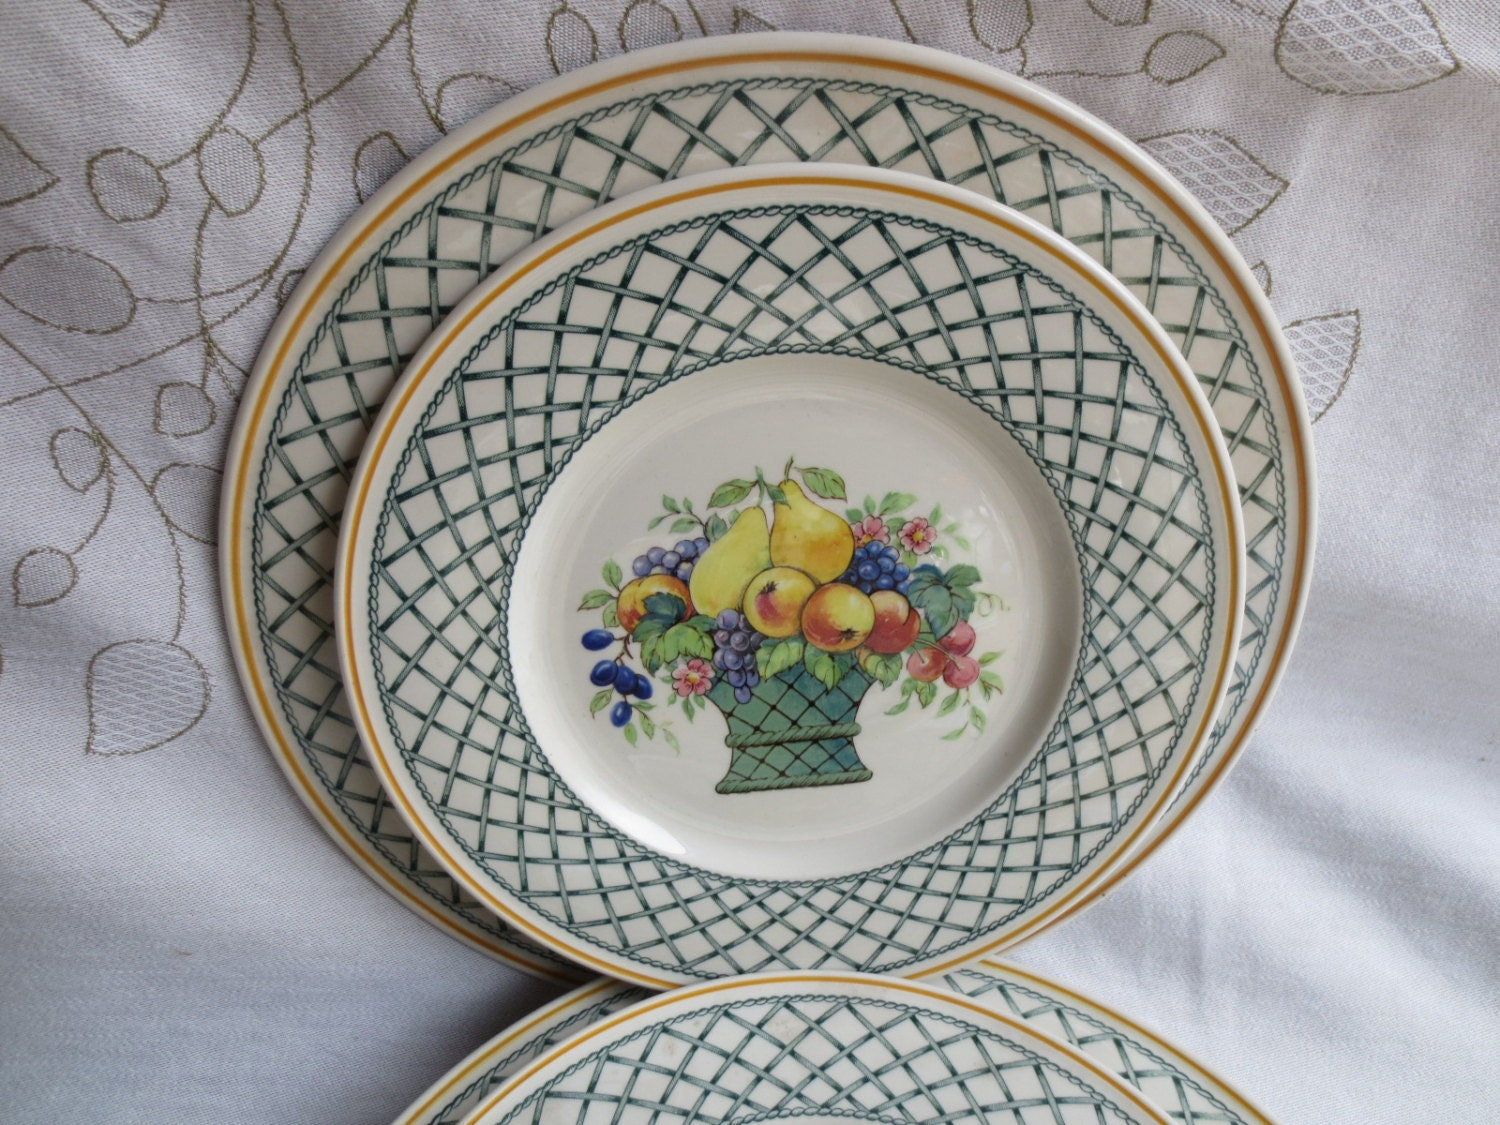 Villeroy and boch basket salad plate fruit by for Villeroy and boch plates